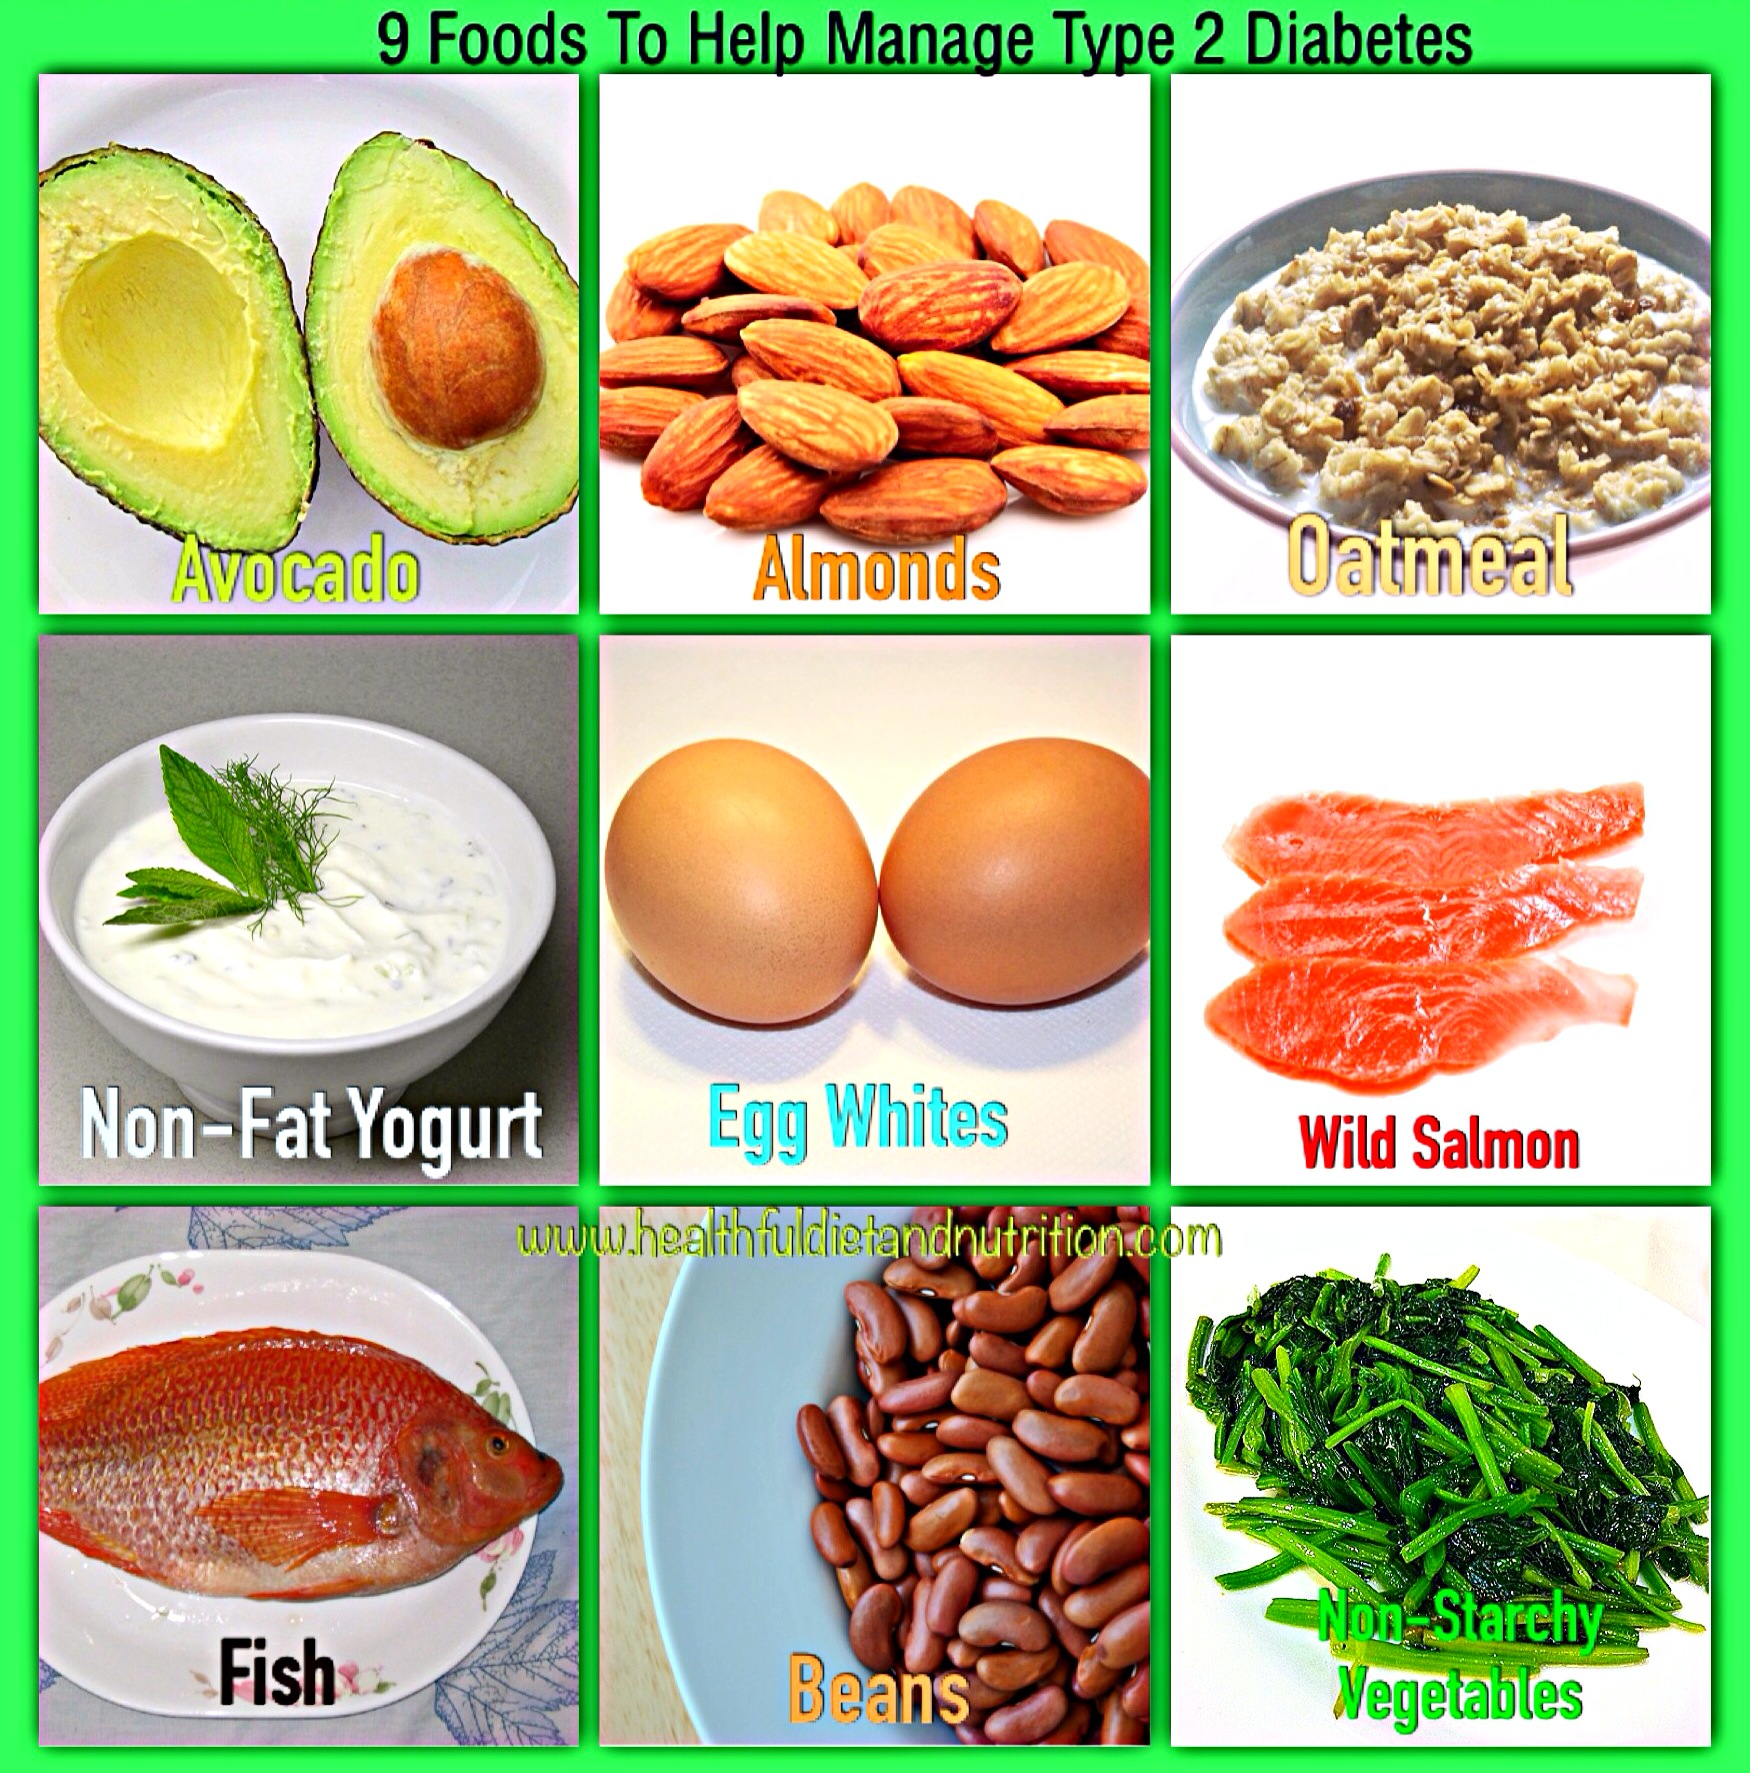 9 Foods To Manage Type 2 Diabetes